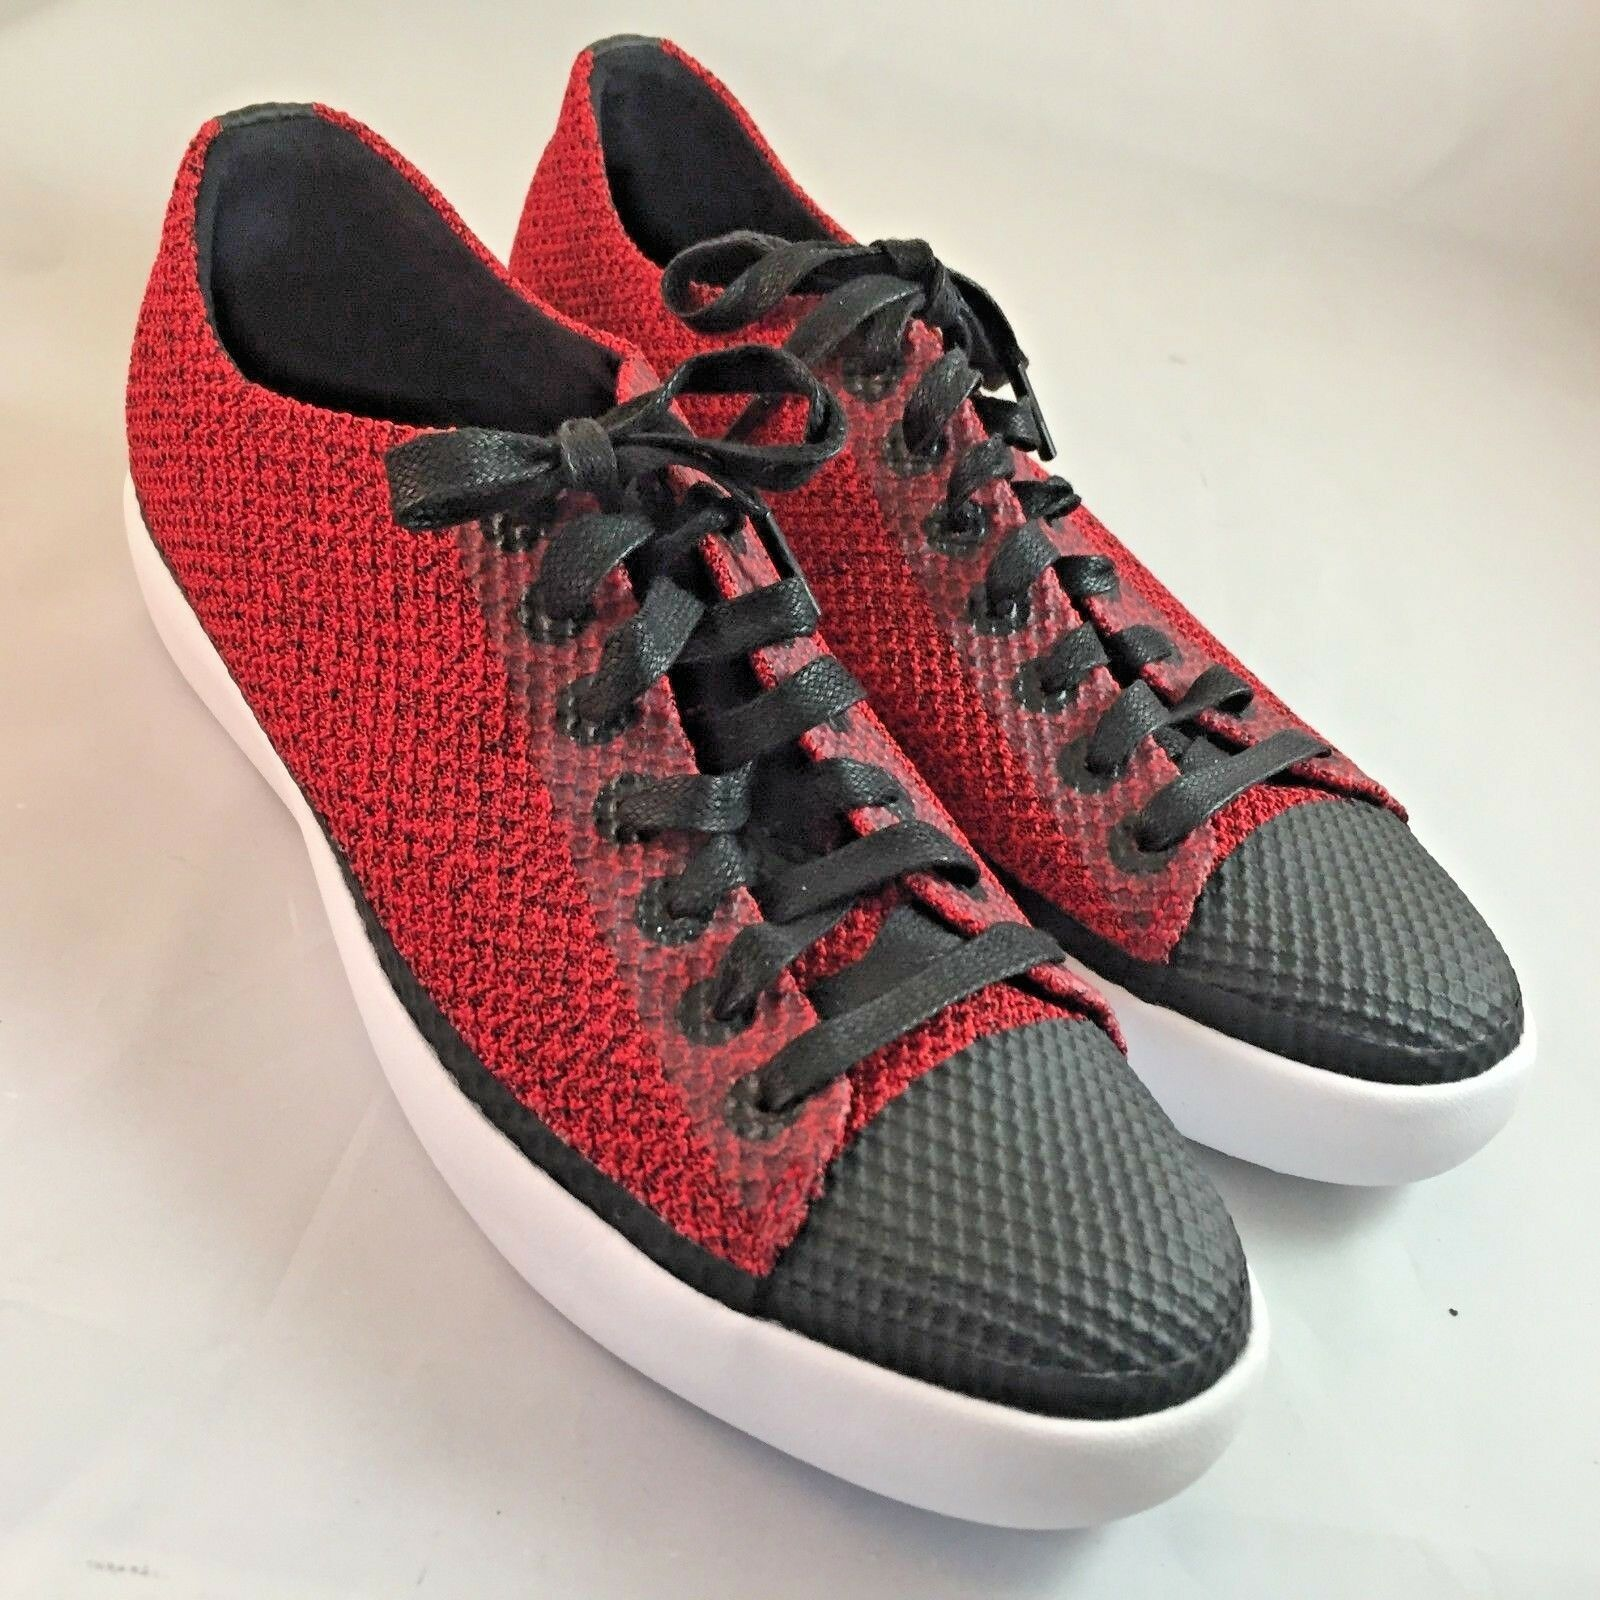 NEW NEW NEW Converse All Star Low Modern Red Flyknit NIKELAB size 10, 44 EUR SAMPLE RARE 63fc9c